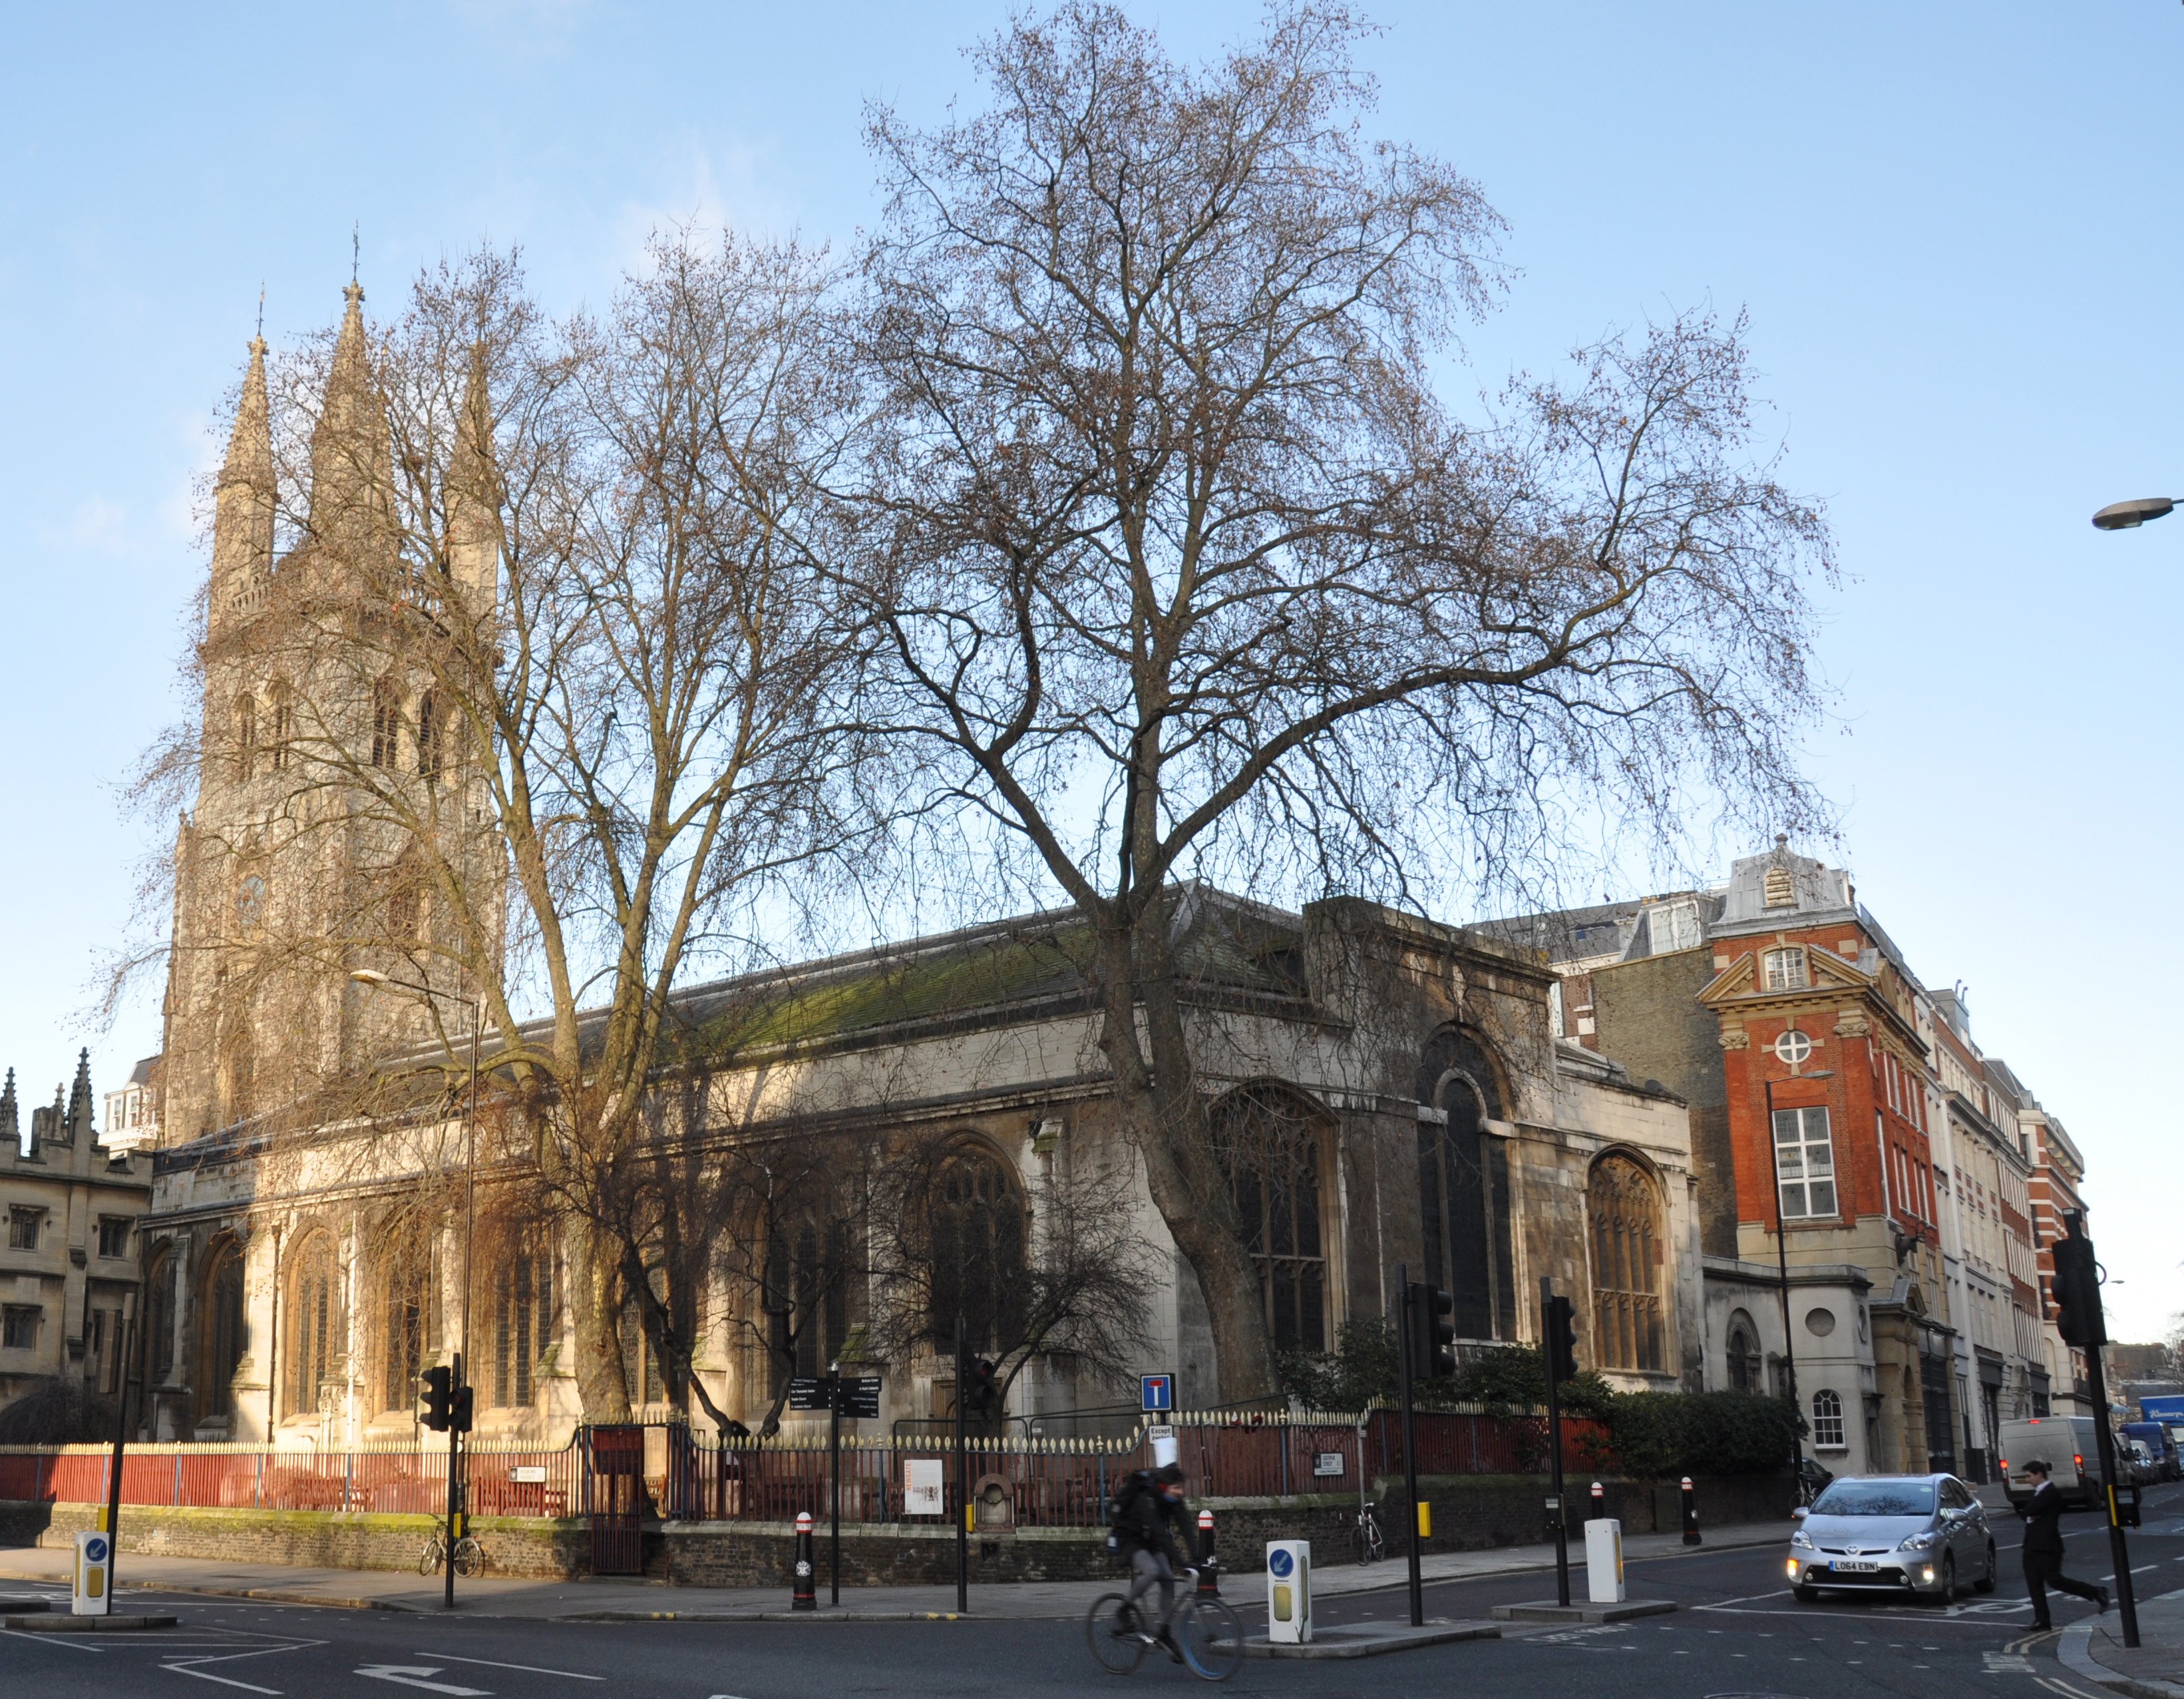 St Sepulchre-without-Negate